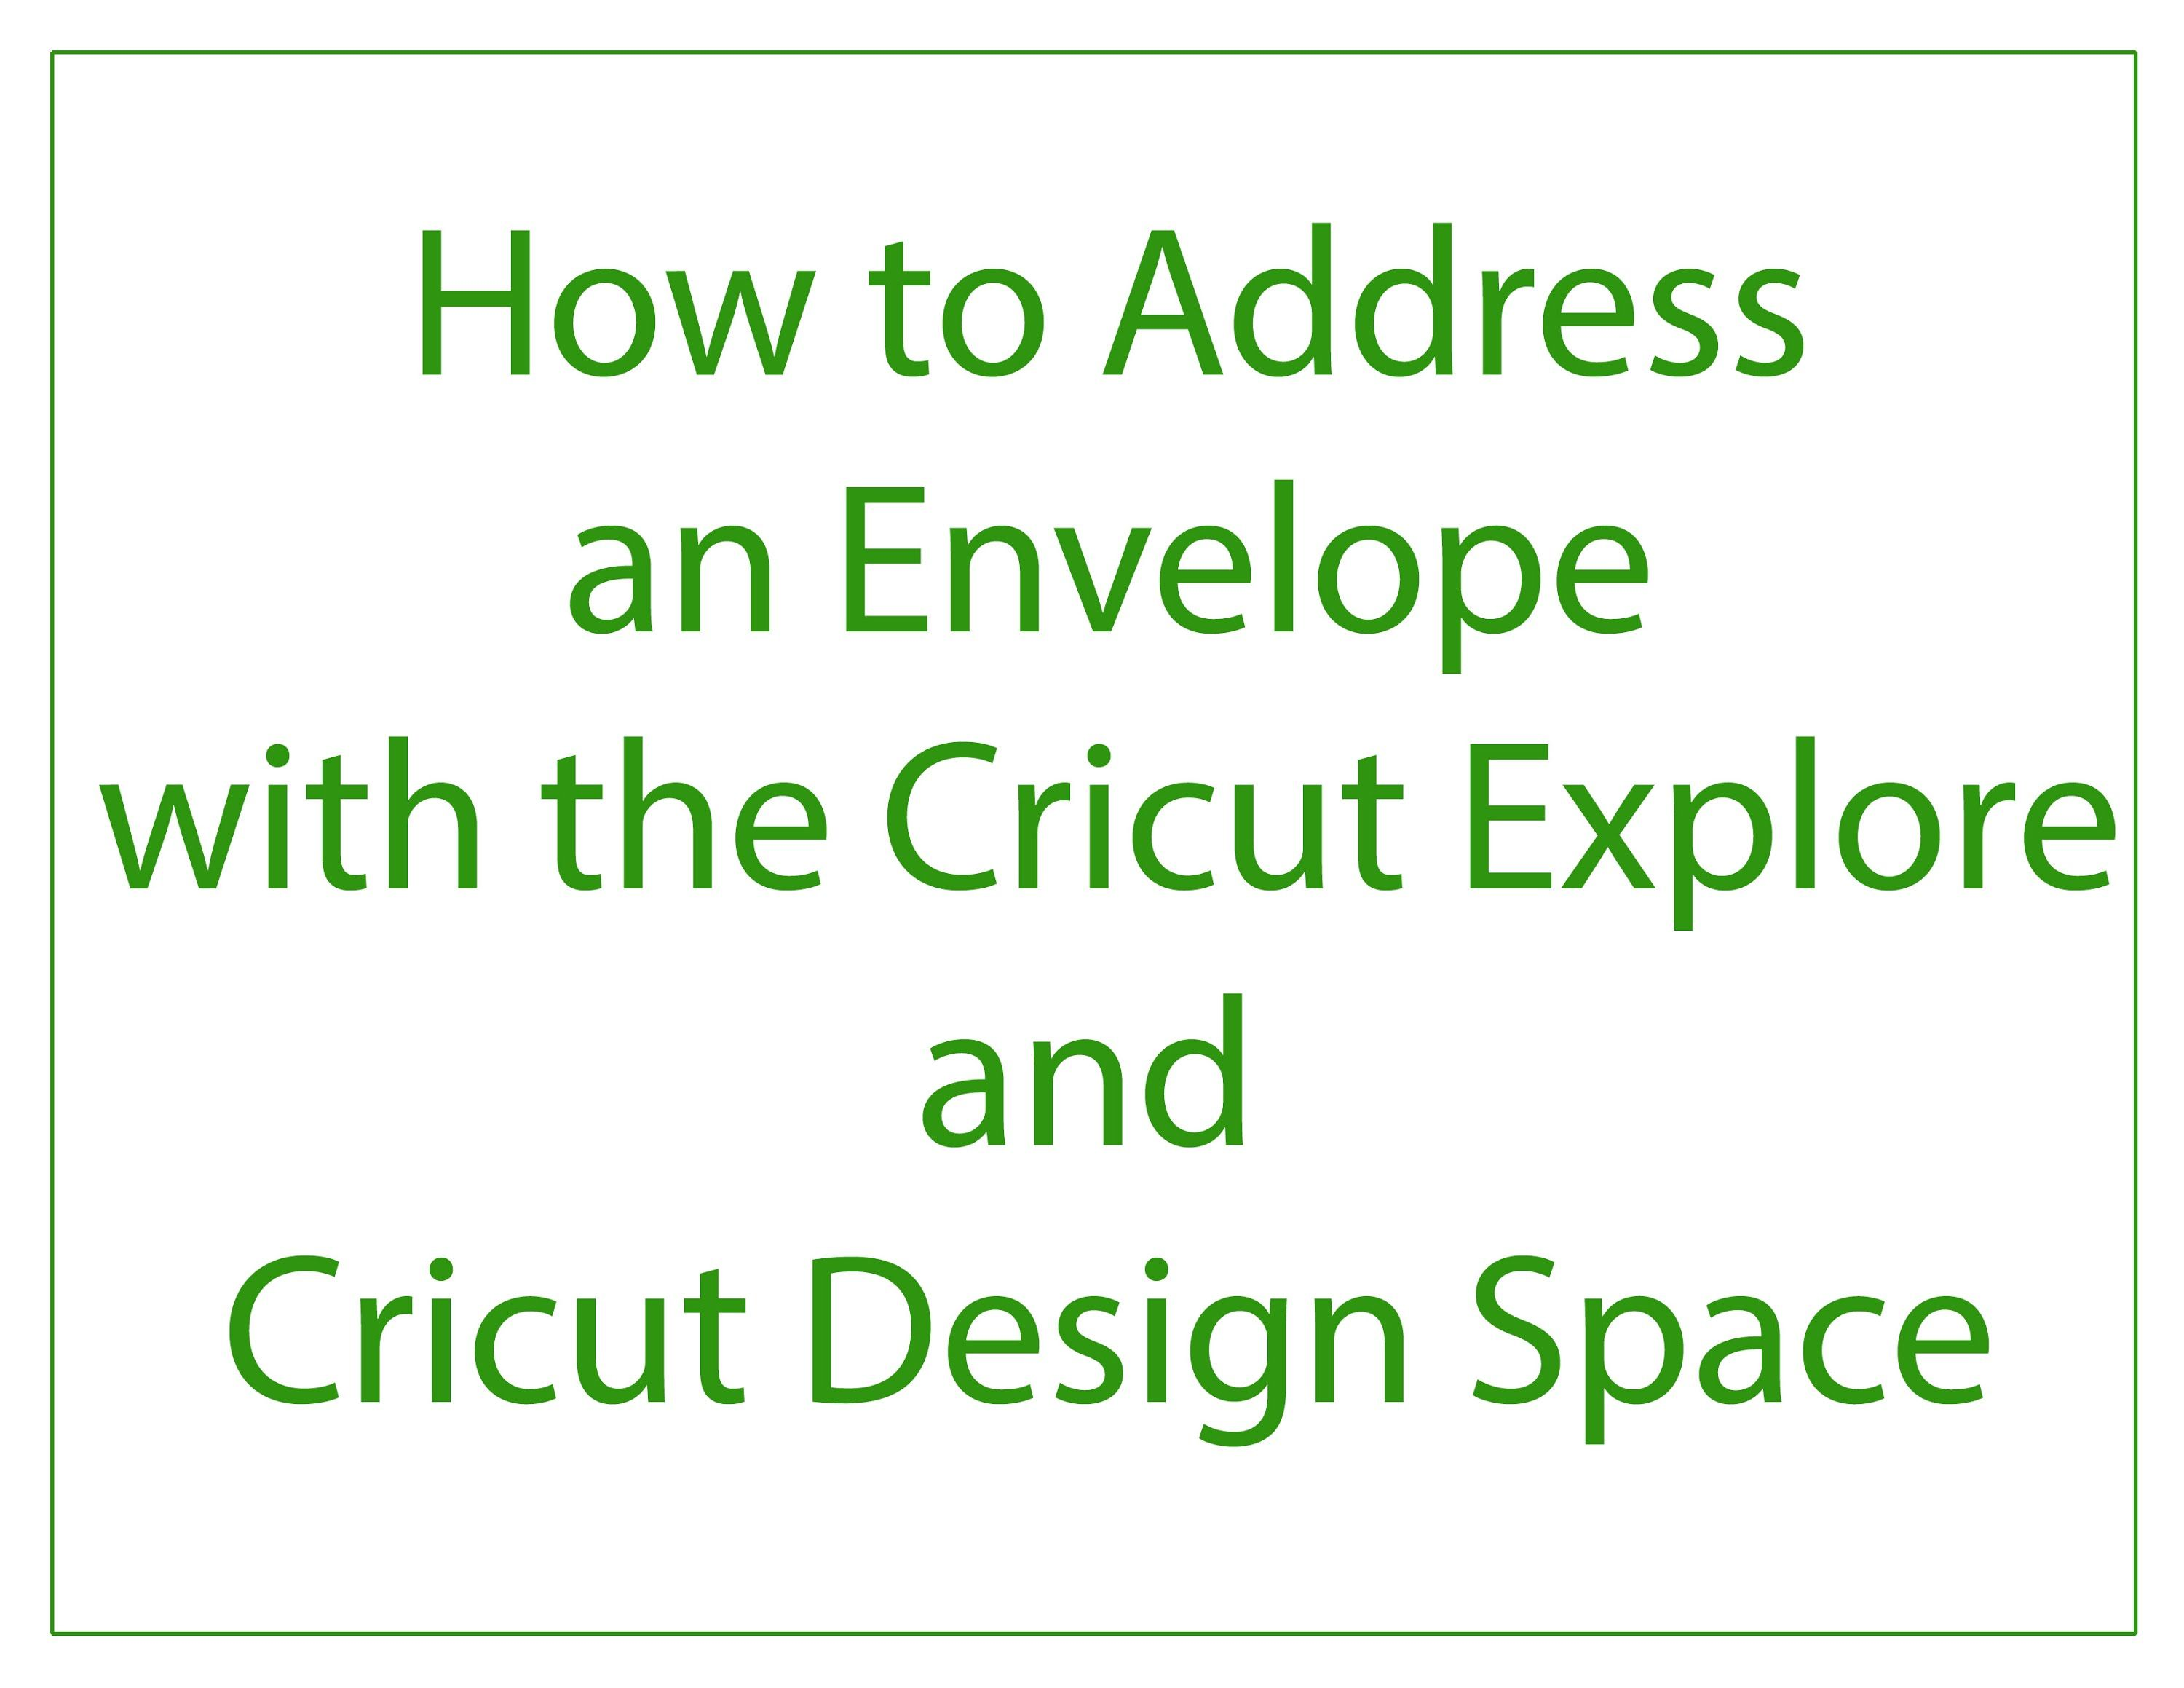 How To Address An Envelope With Cricut Explore  Design Space